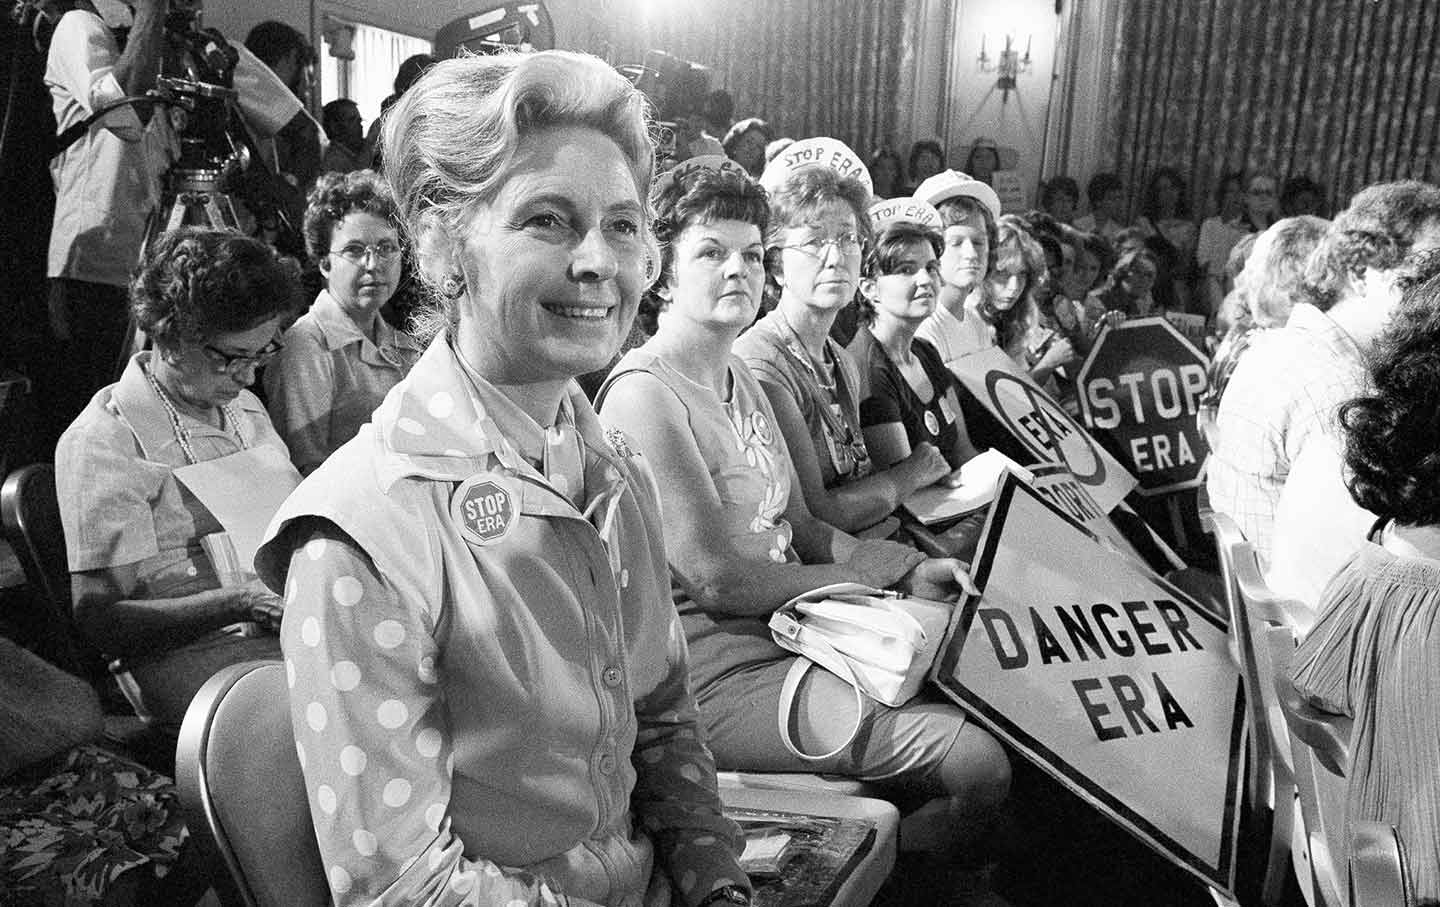 phyllis women Phyllis schlafly, whose grass-roots campaigns against communism, abortion and the equal rights amendment galvanized conservatives for almost two generations and helped reshape american politics, died on monday she was 92 her death was confirmed by the eagle forum, the conservative organization she.